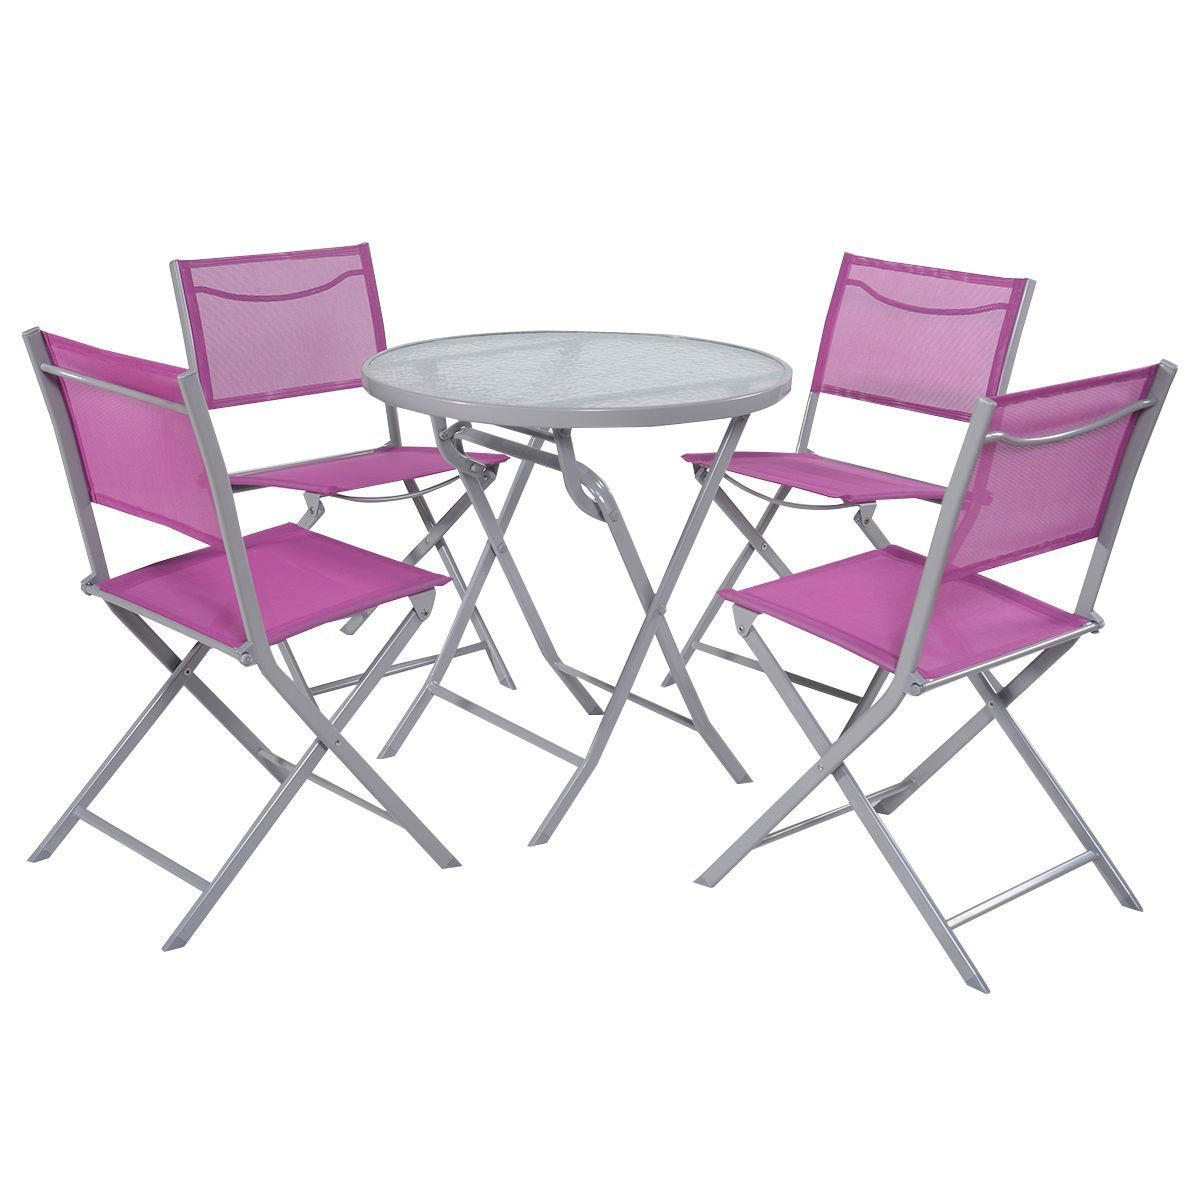 Cool Pink Purple Rose Red 5 Piece Folding Chairs And Table Outdoor Patio Furniture Set Gmtry Best Dining Table And Chair Ideas Images Gmtryco